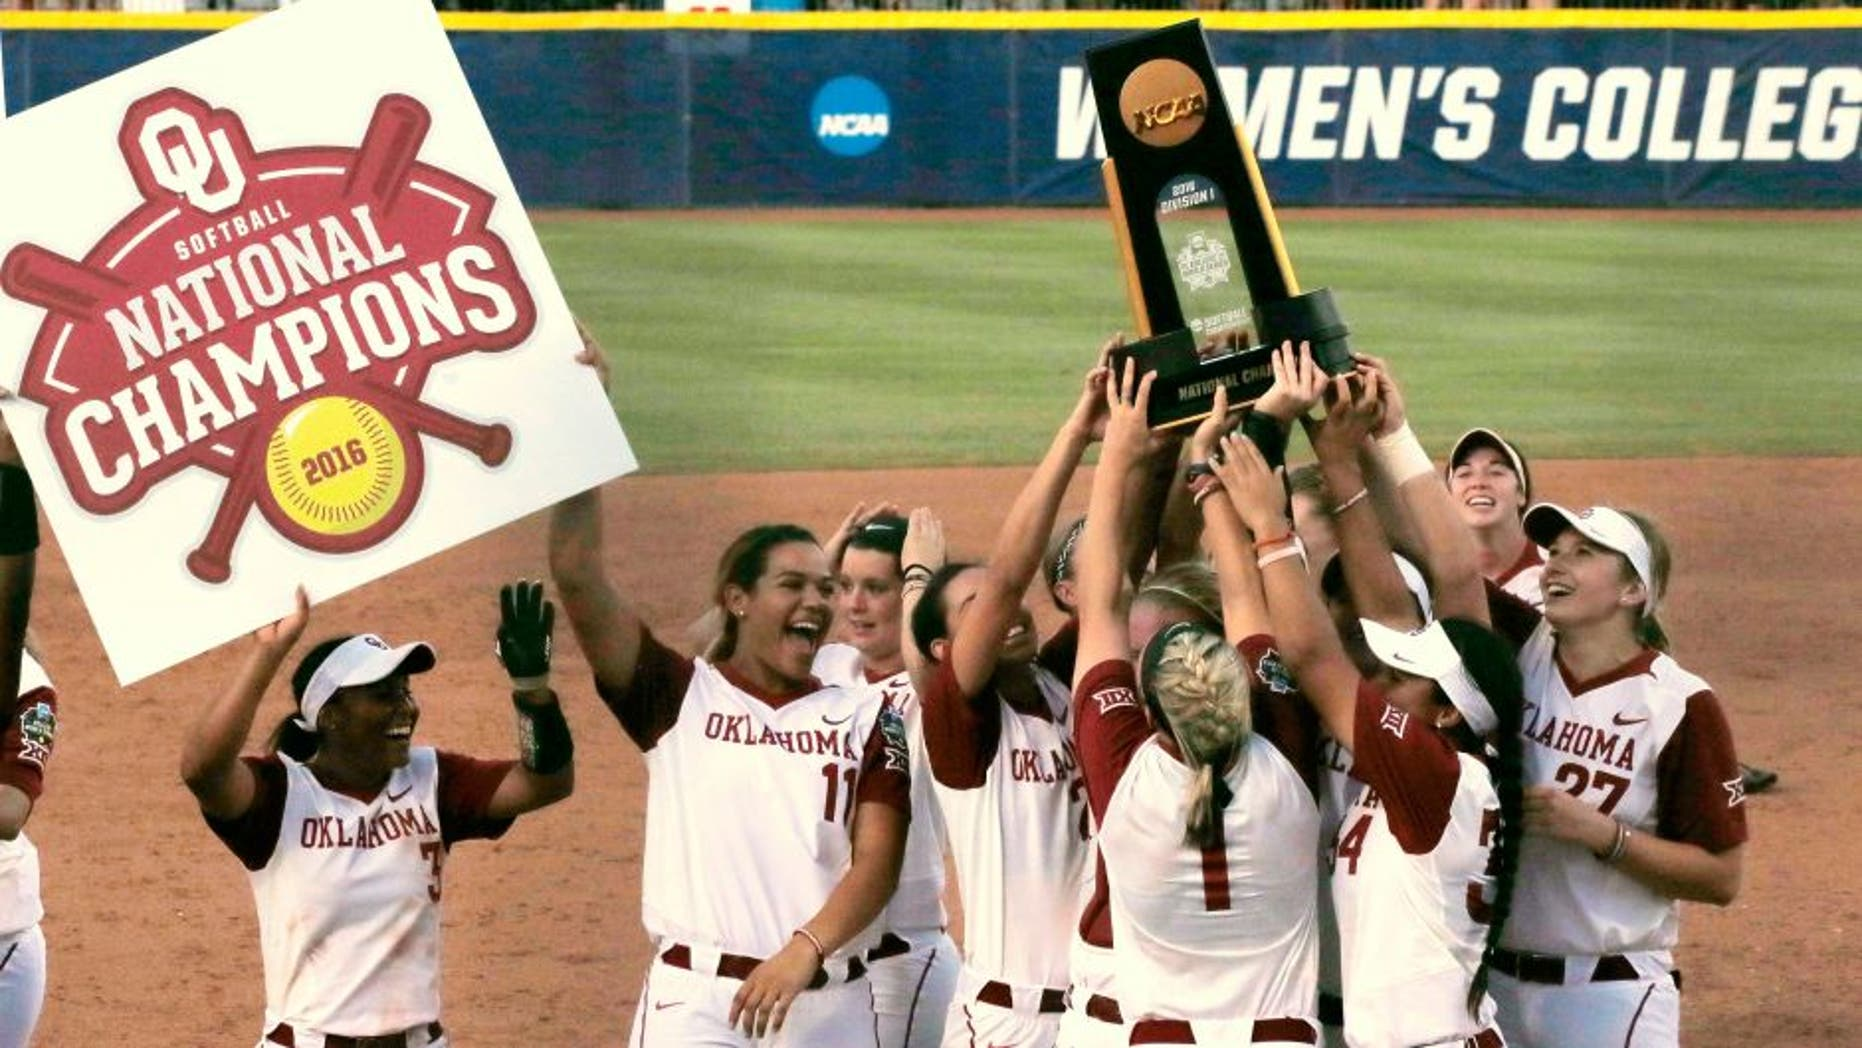 Oklahoma players celebrate with the trophy after defeating Auburn 2-1 in the deciding game of the championship series of the NCAA softball College World Series, Wednesday, June 8, 2016, in Oklahoma City. (AP Photo/Sue Ogrocki)